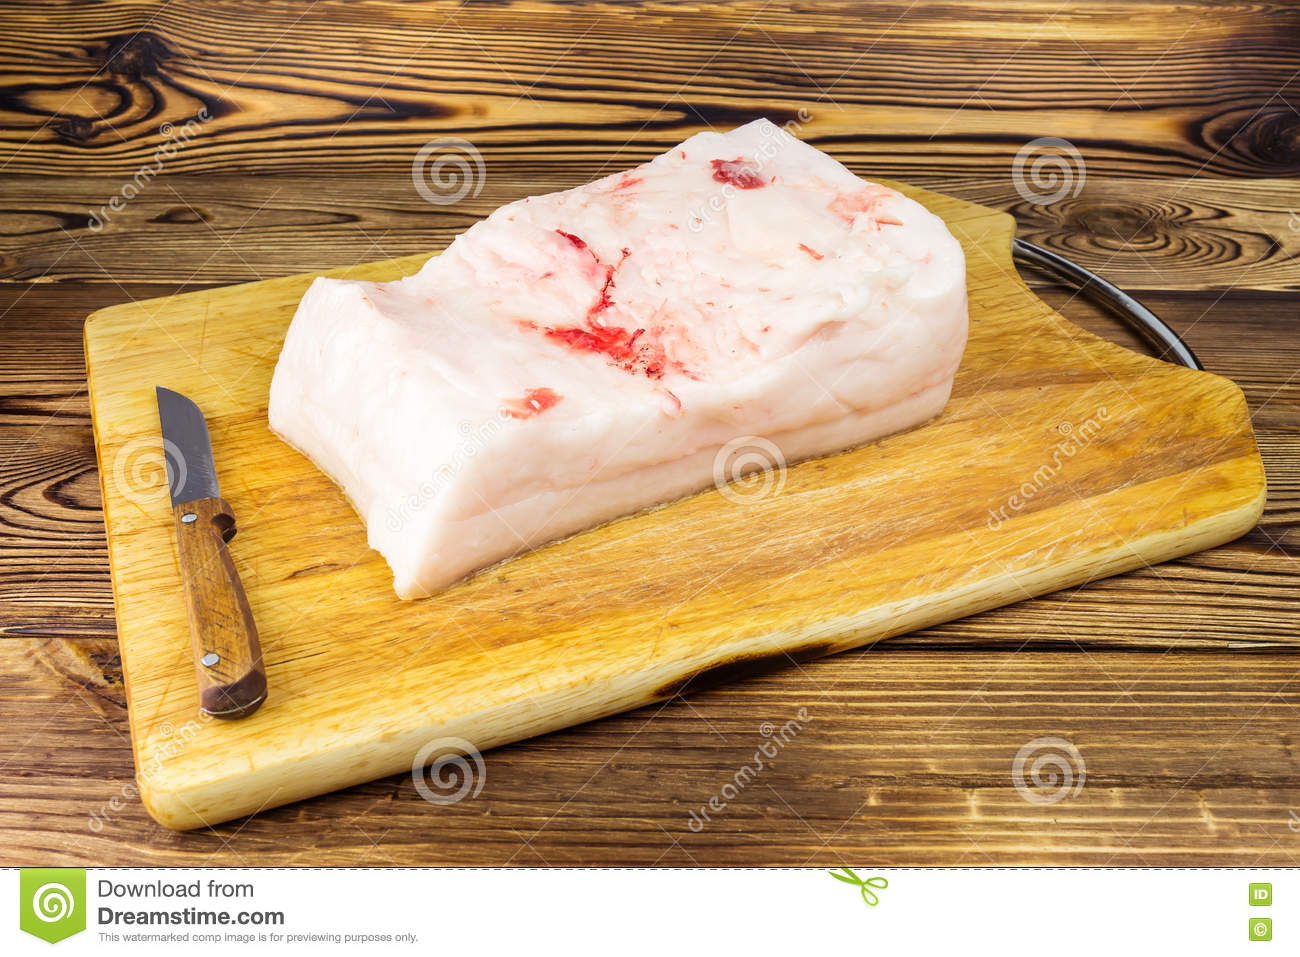 Piece of fresh, raw pork lard and knife on wooden board, rustic background.